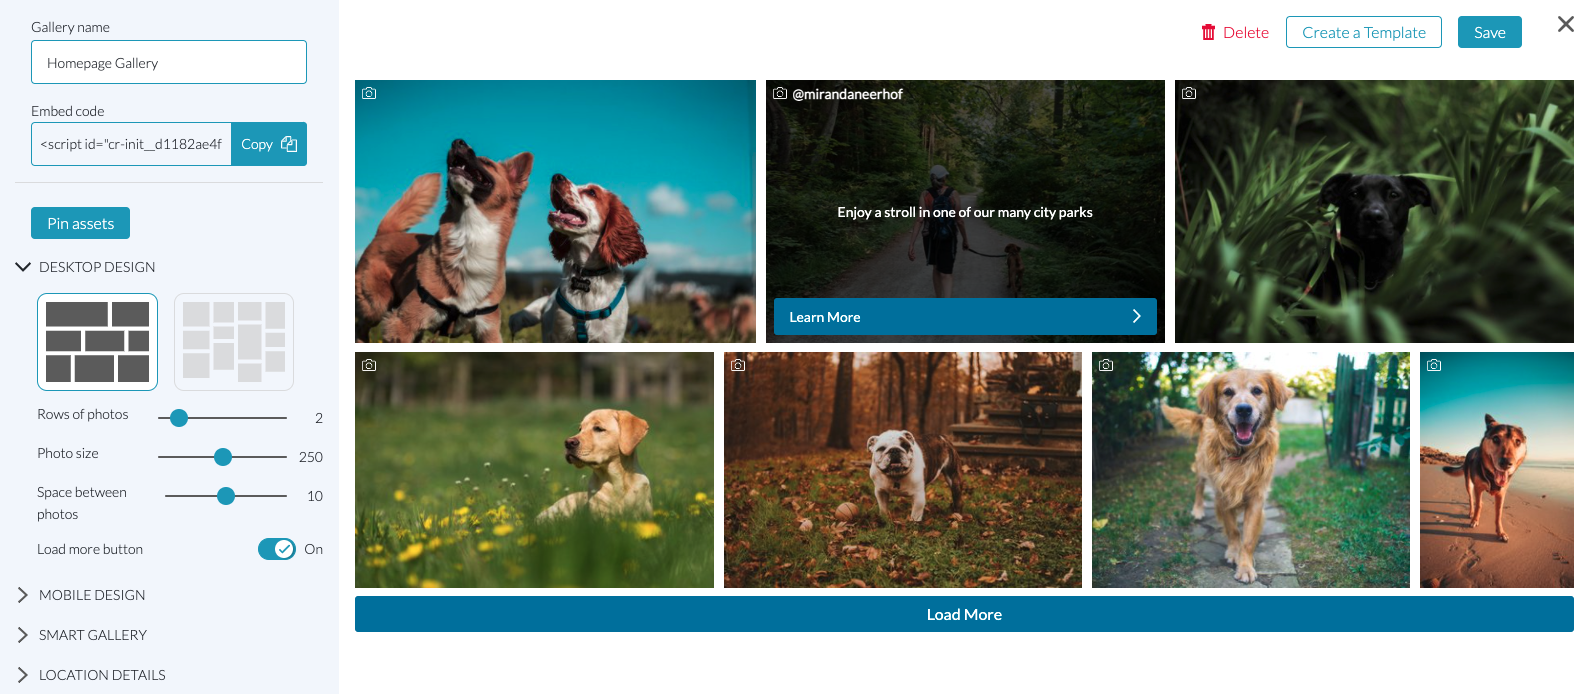 The new Preview when you're creating a Gallery is now interactive